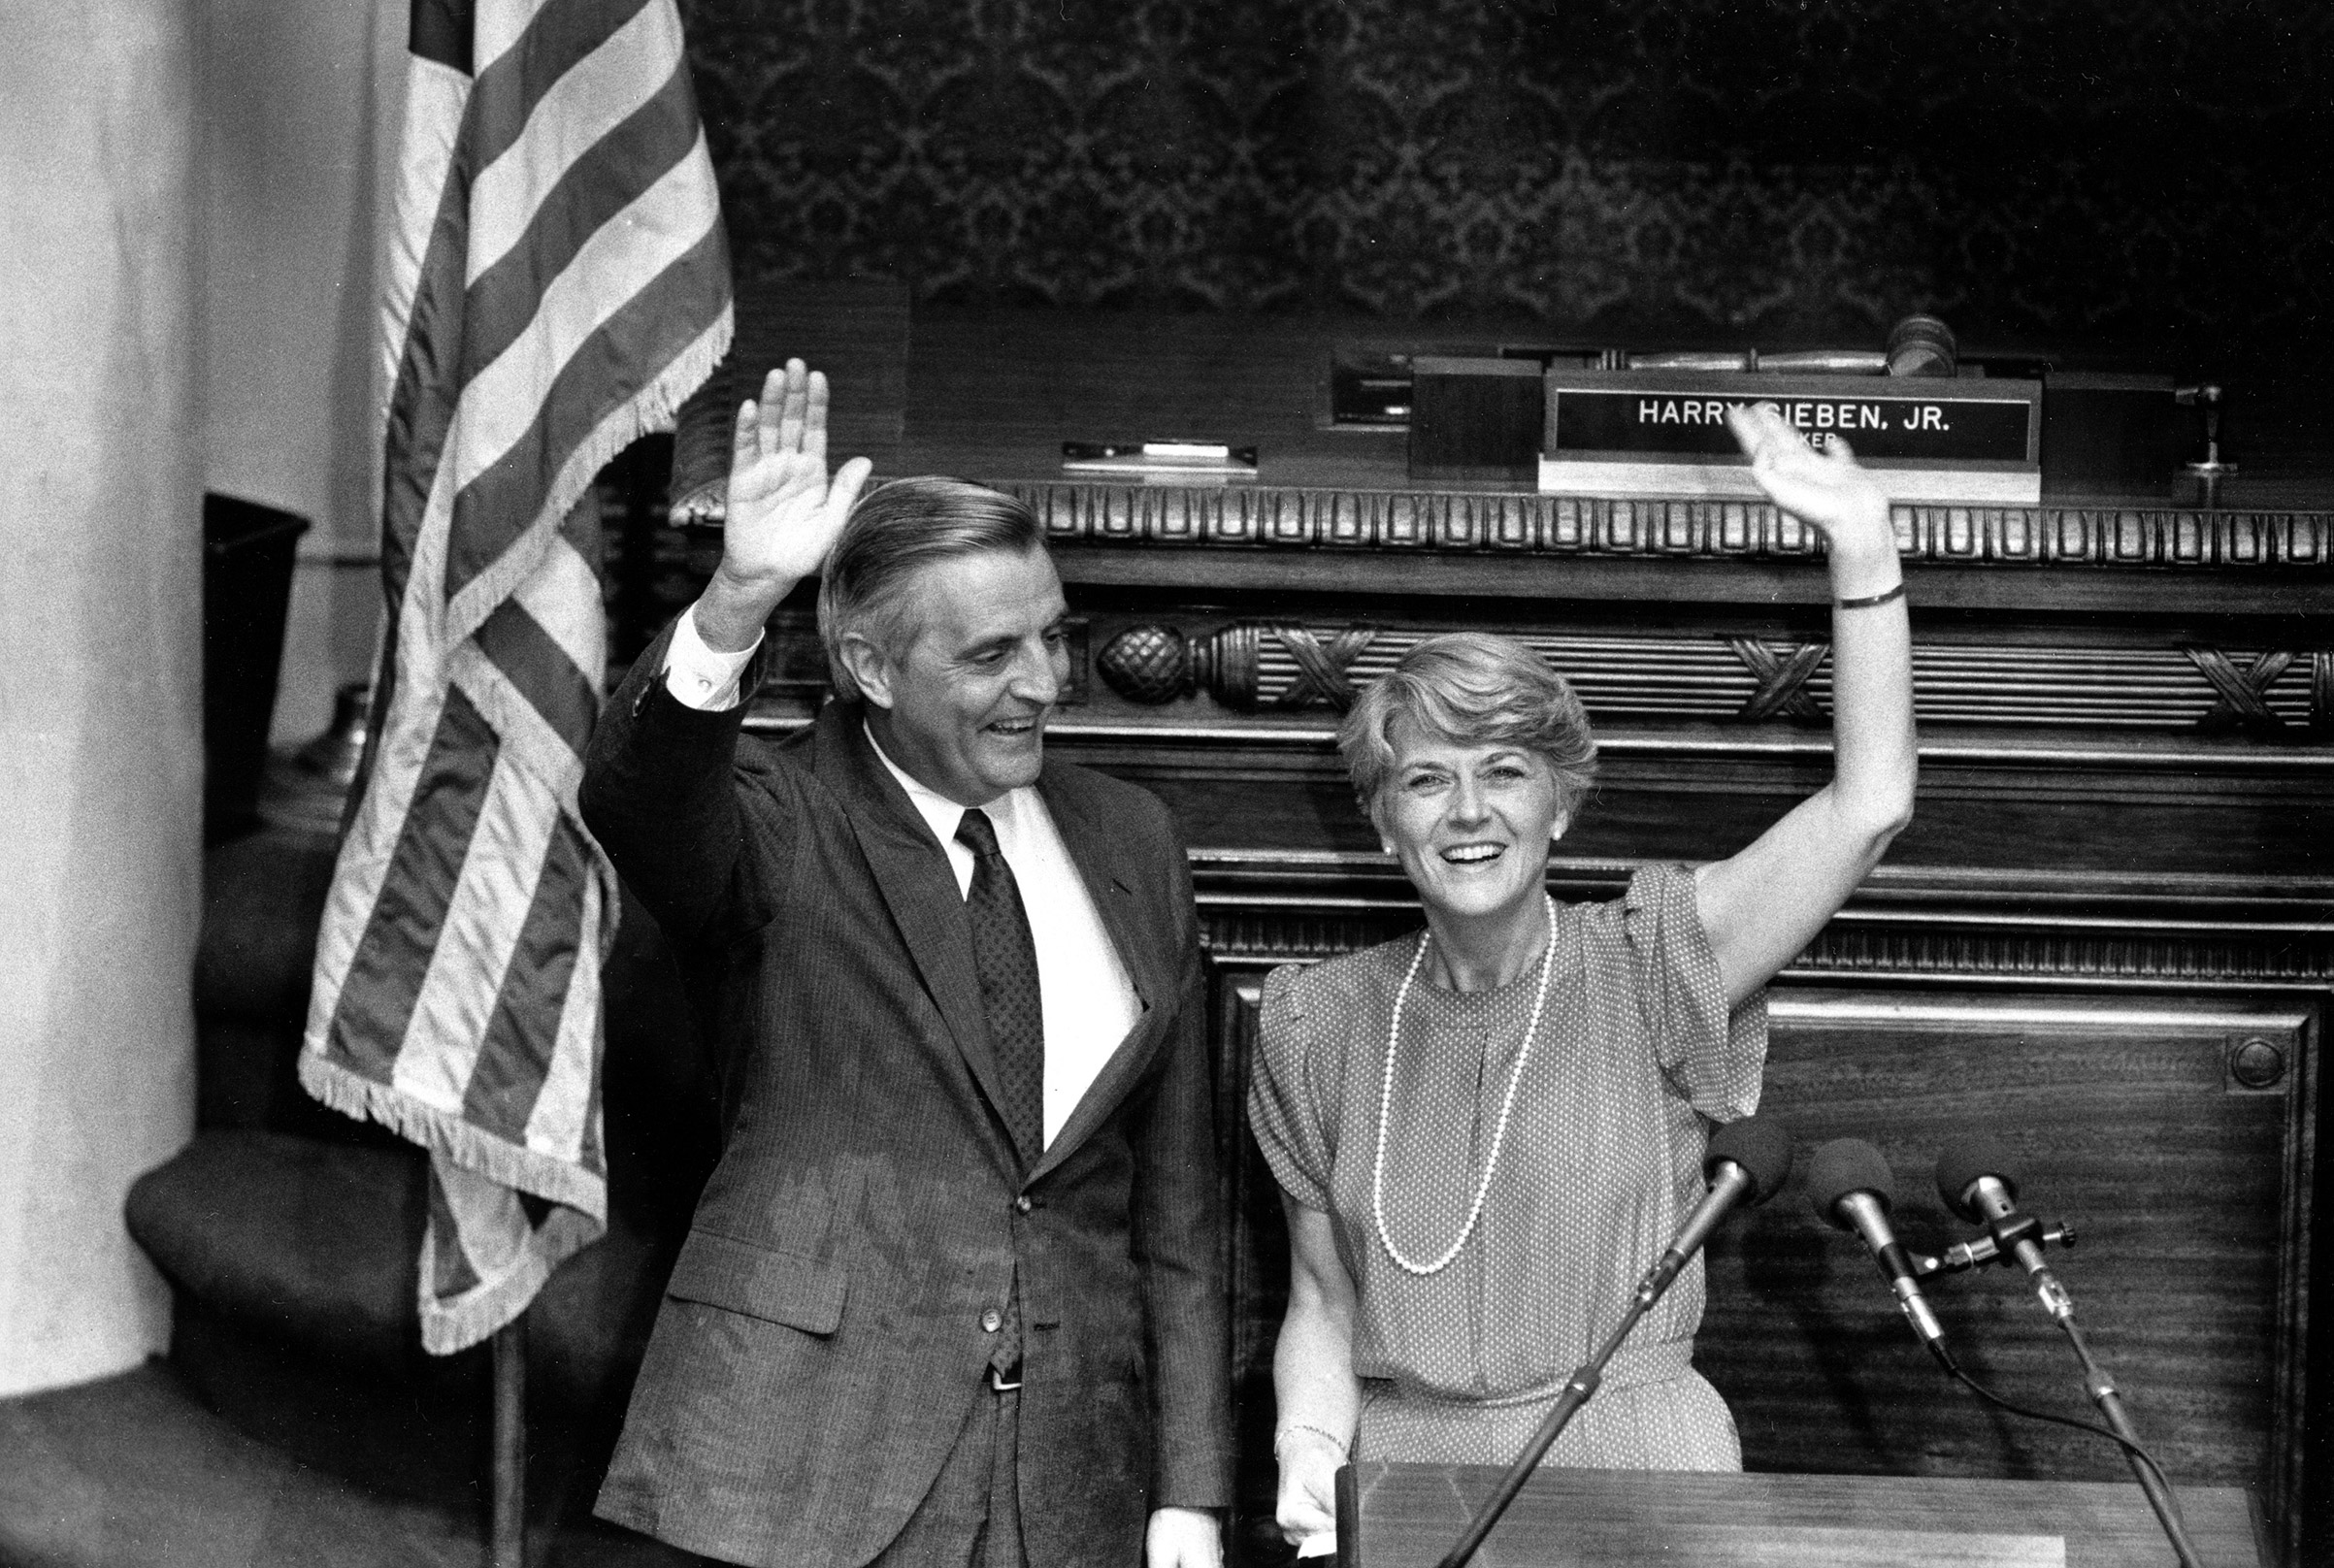 GERALDINE FERRARO became the first female vice presidential candidate to represent a major American political party in 1984.